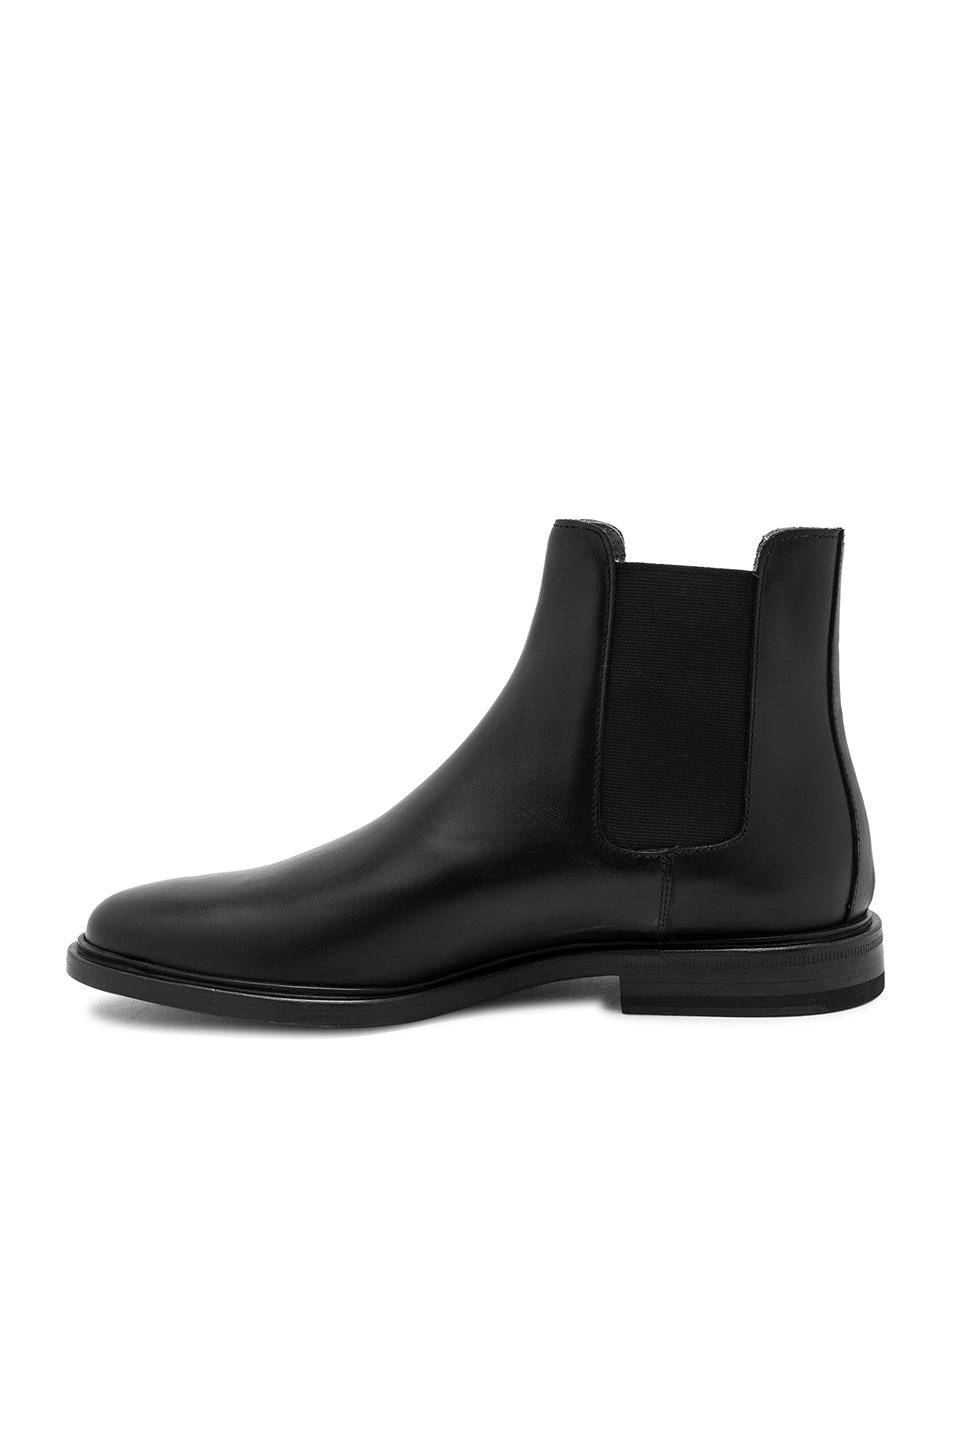 Image 5 of Common Projects Leather Chelsea Boots in Black